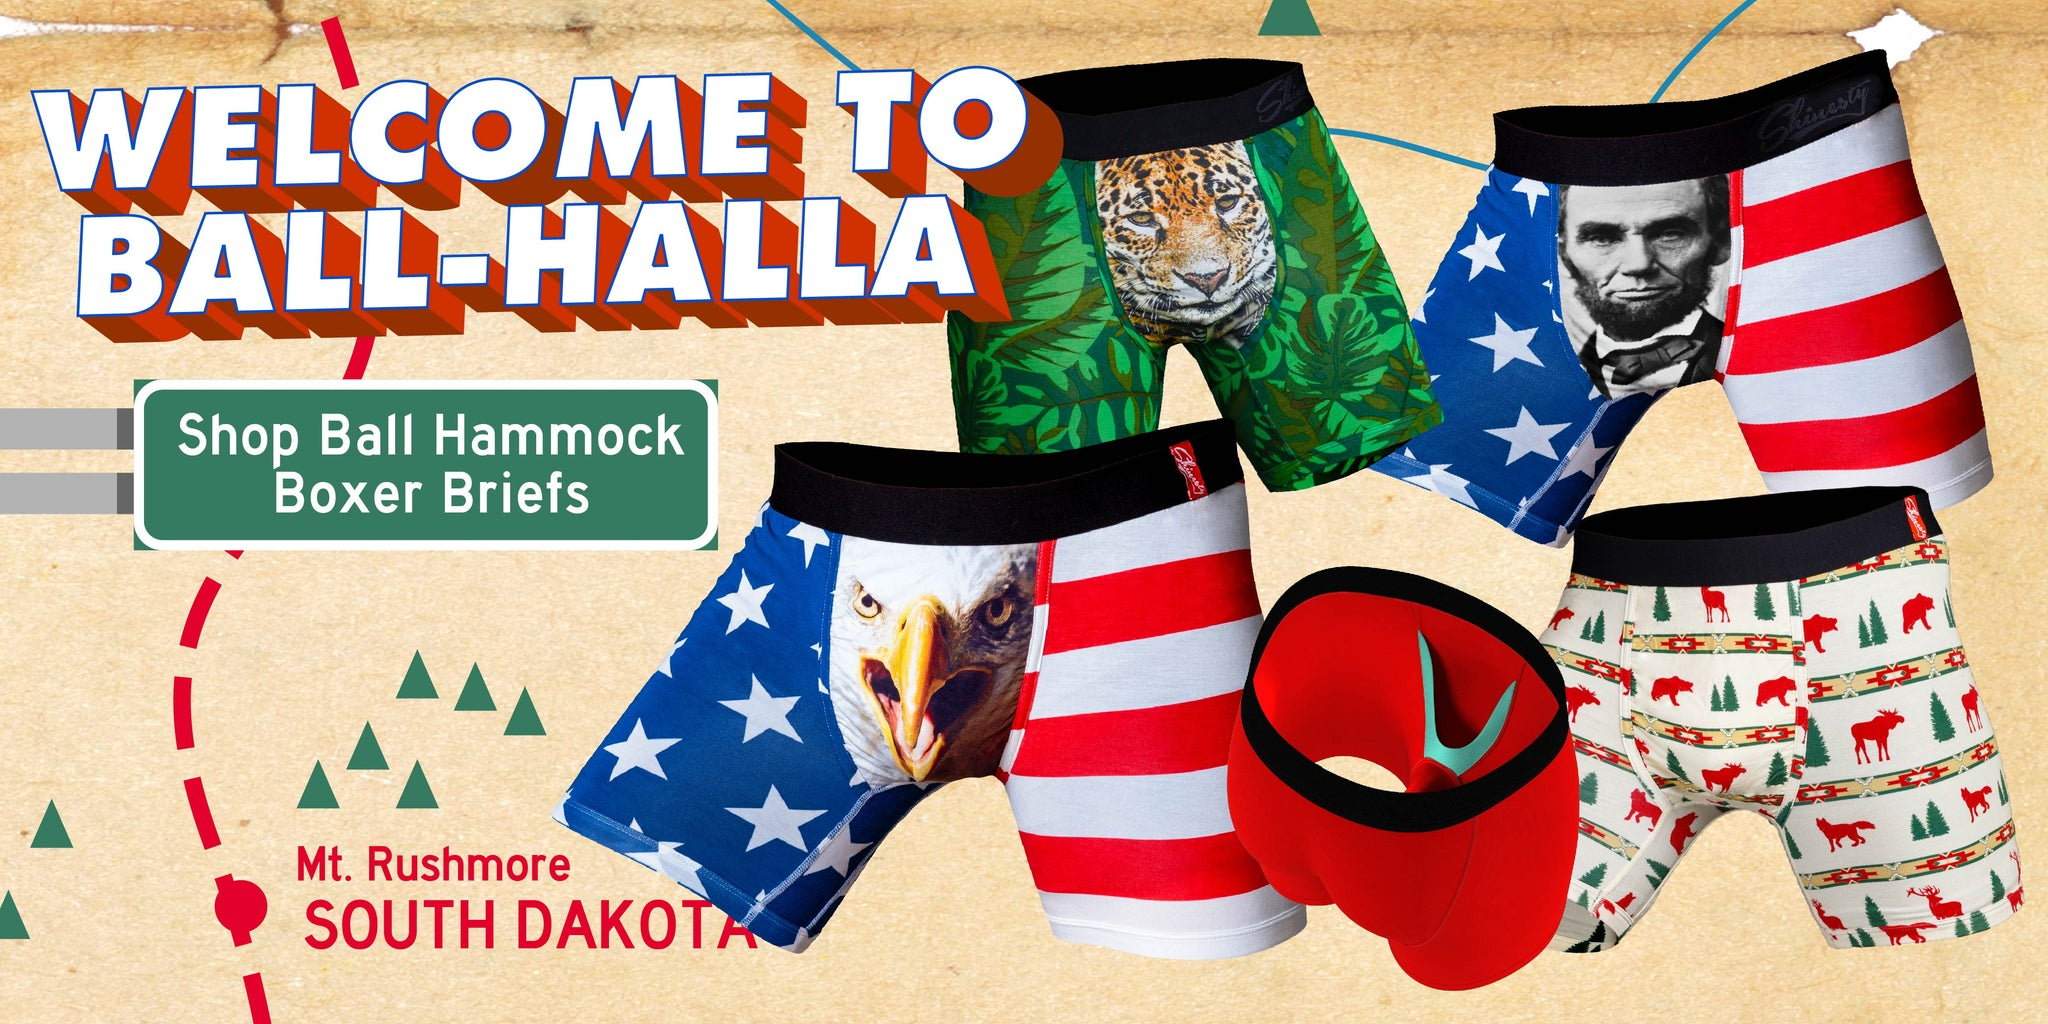 db4d093c4c Ball Hammock Boxer Briefs. American Flag Swimsuits & Patriotic Bathing Suits